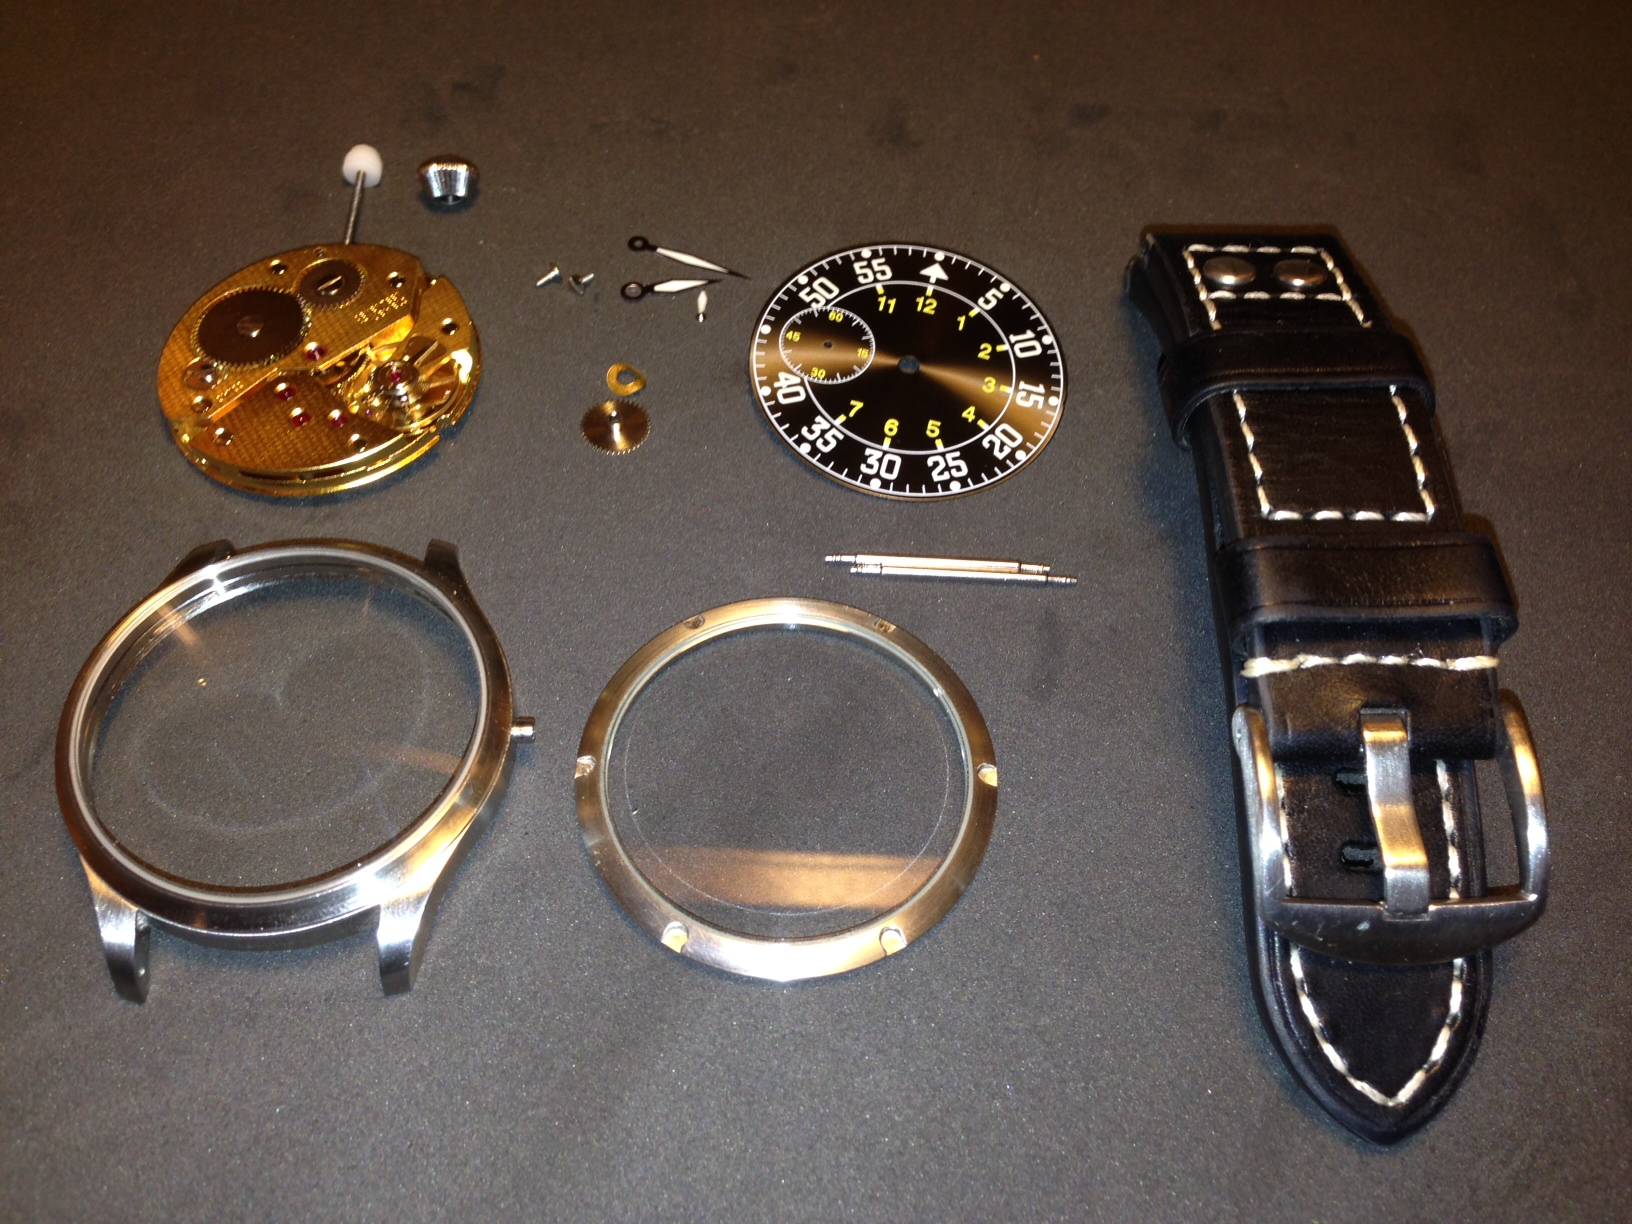 How to build your own mechanical watch tick tick tick tick how to build your own mechanical watch flieger 01 solutioingenieria Images